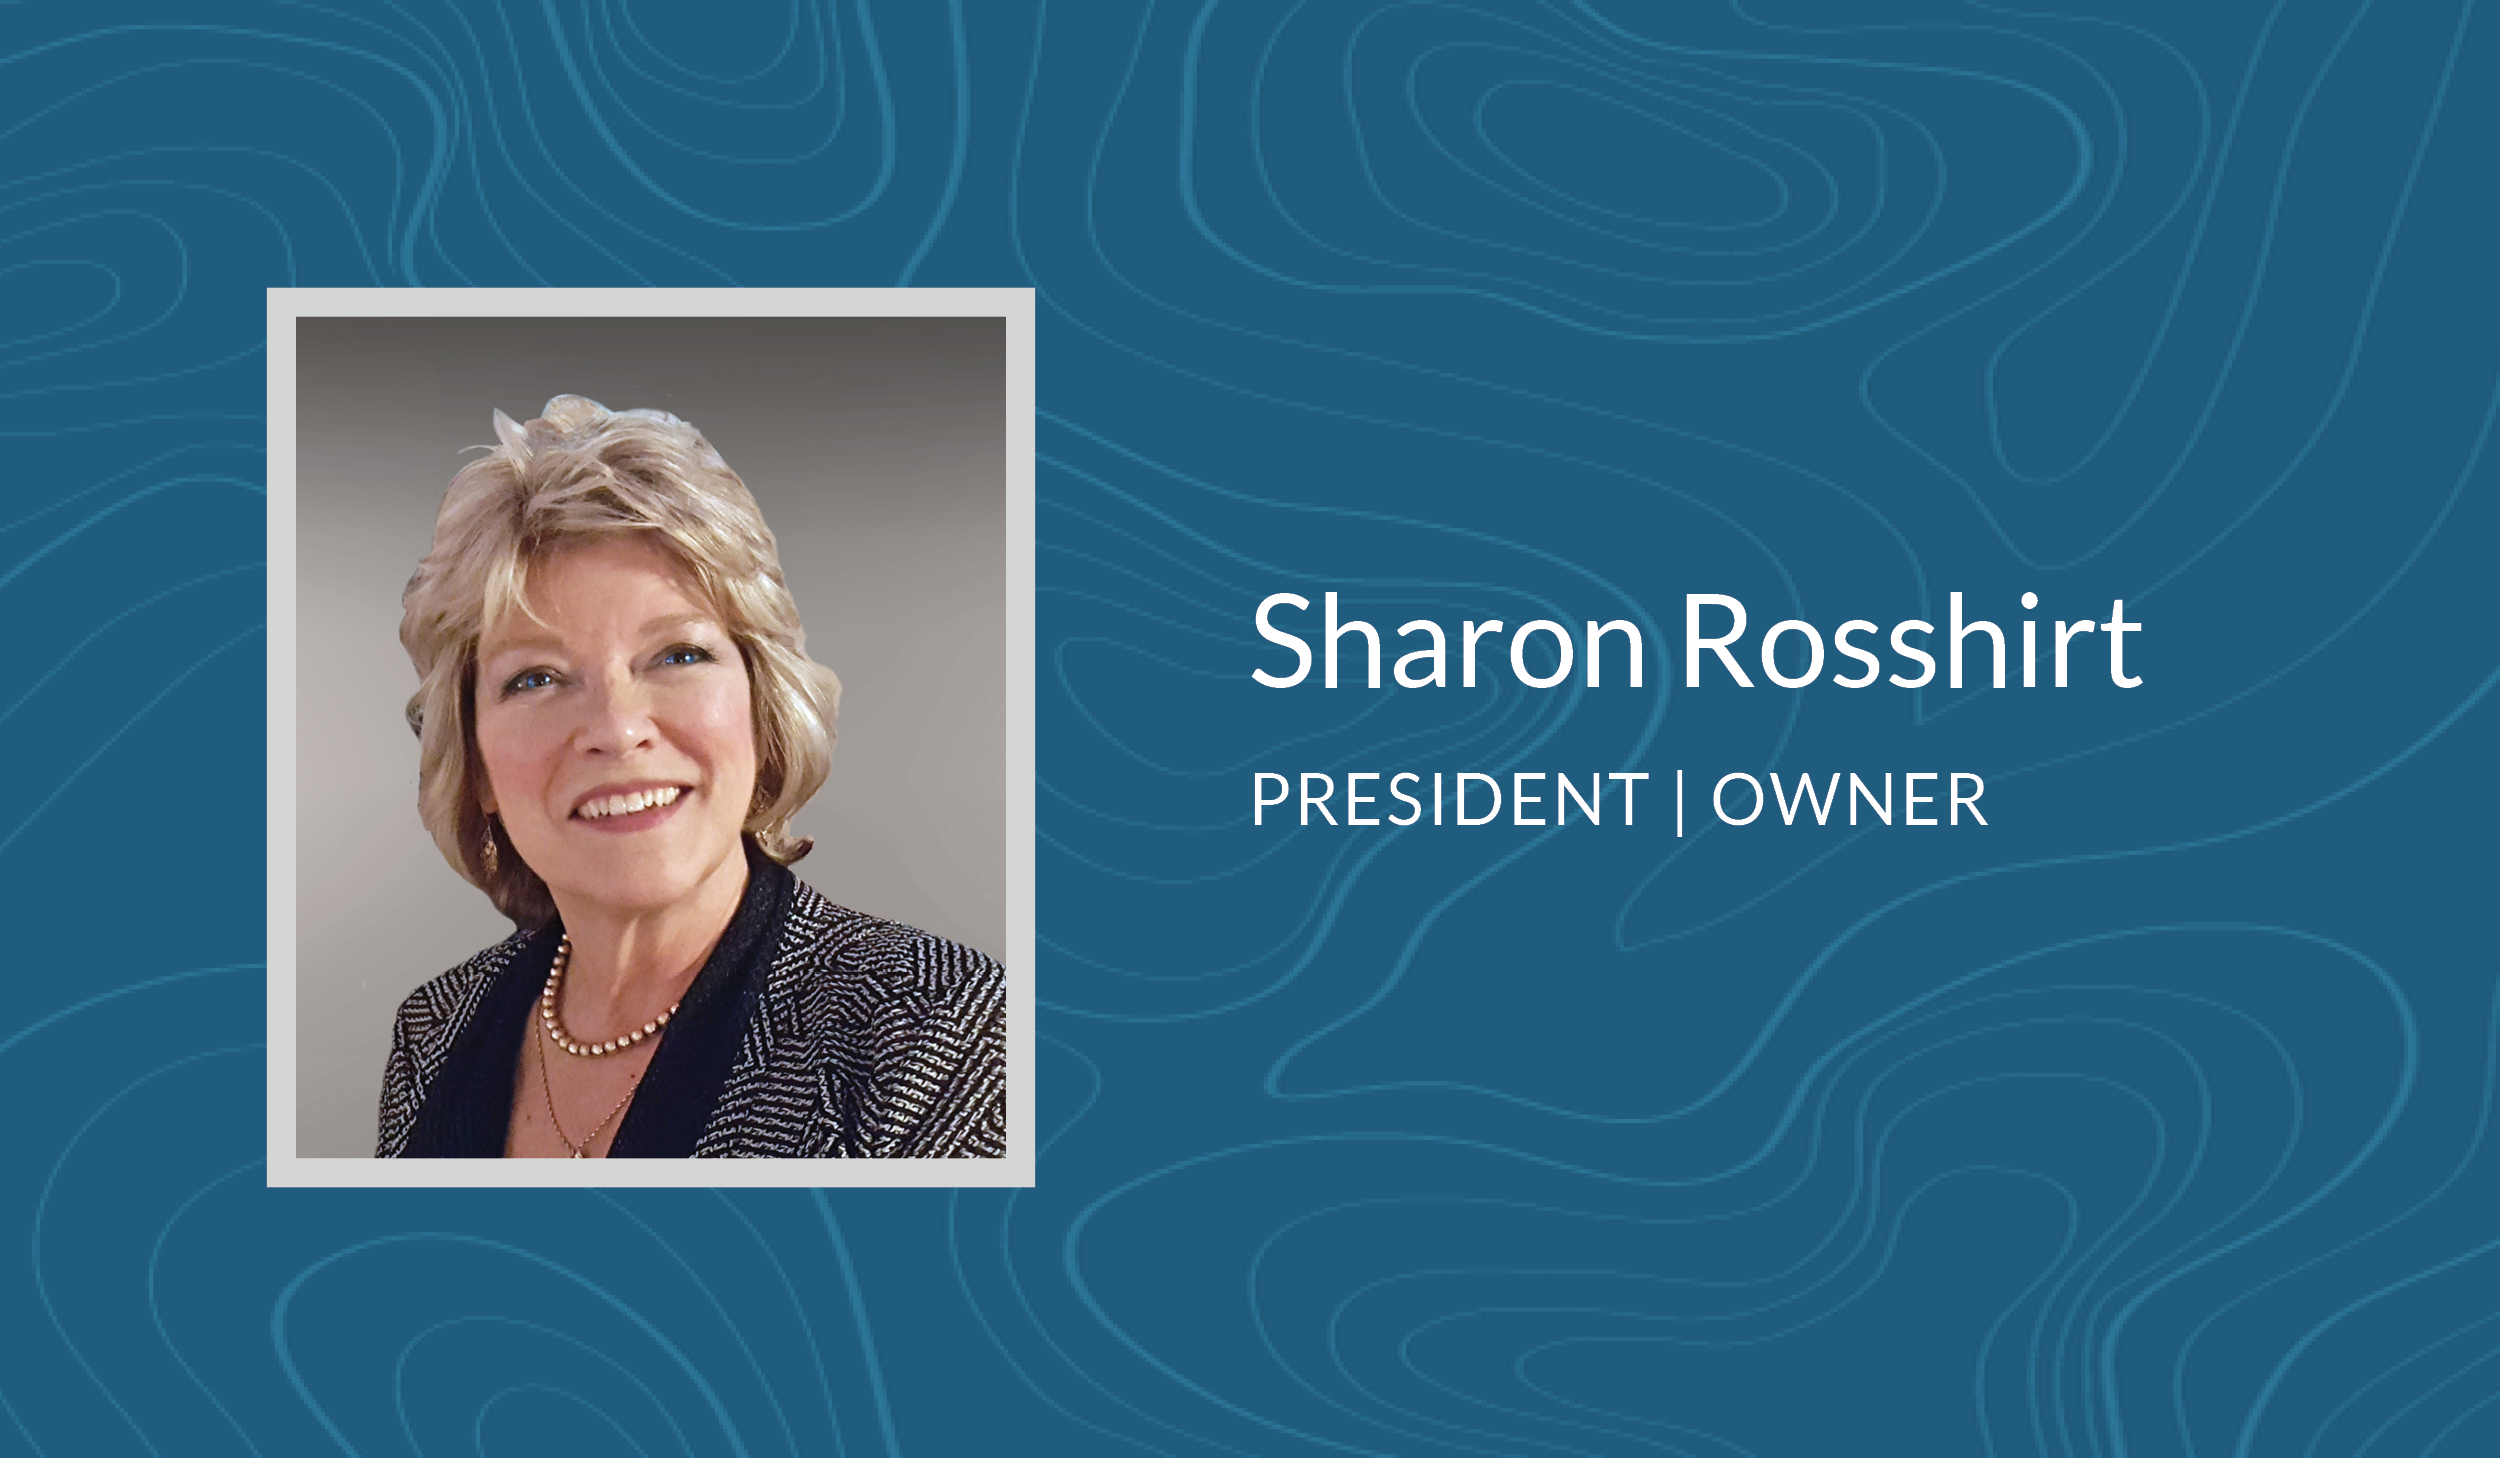 Sharon Rosshirt Landing Page Headers.png